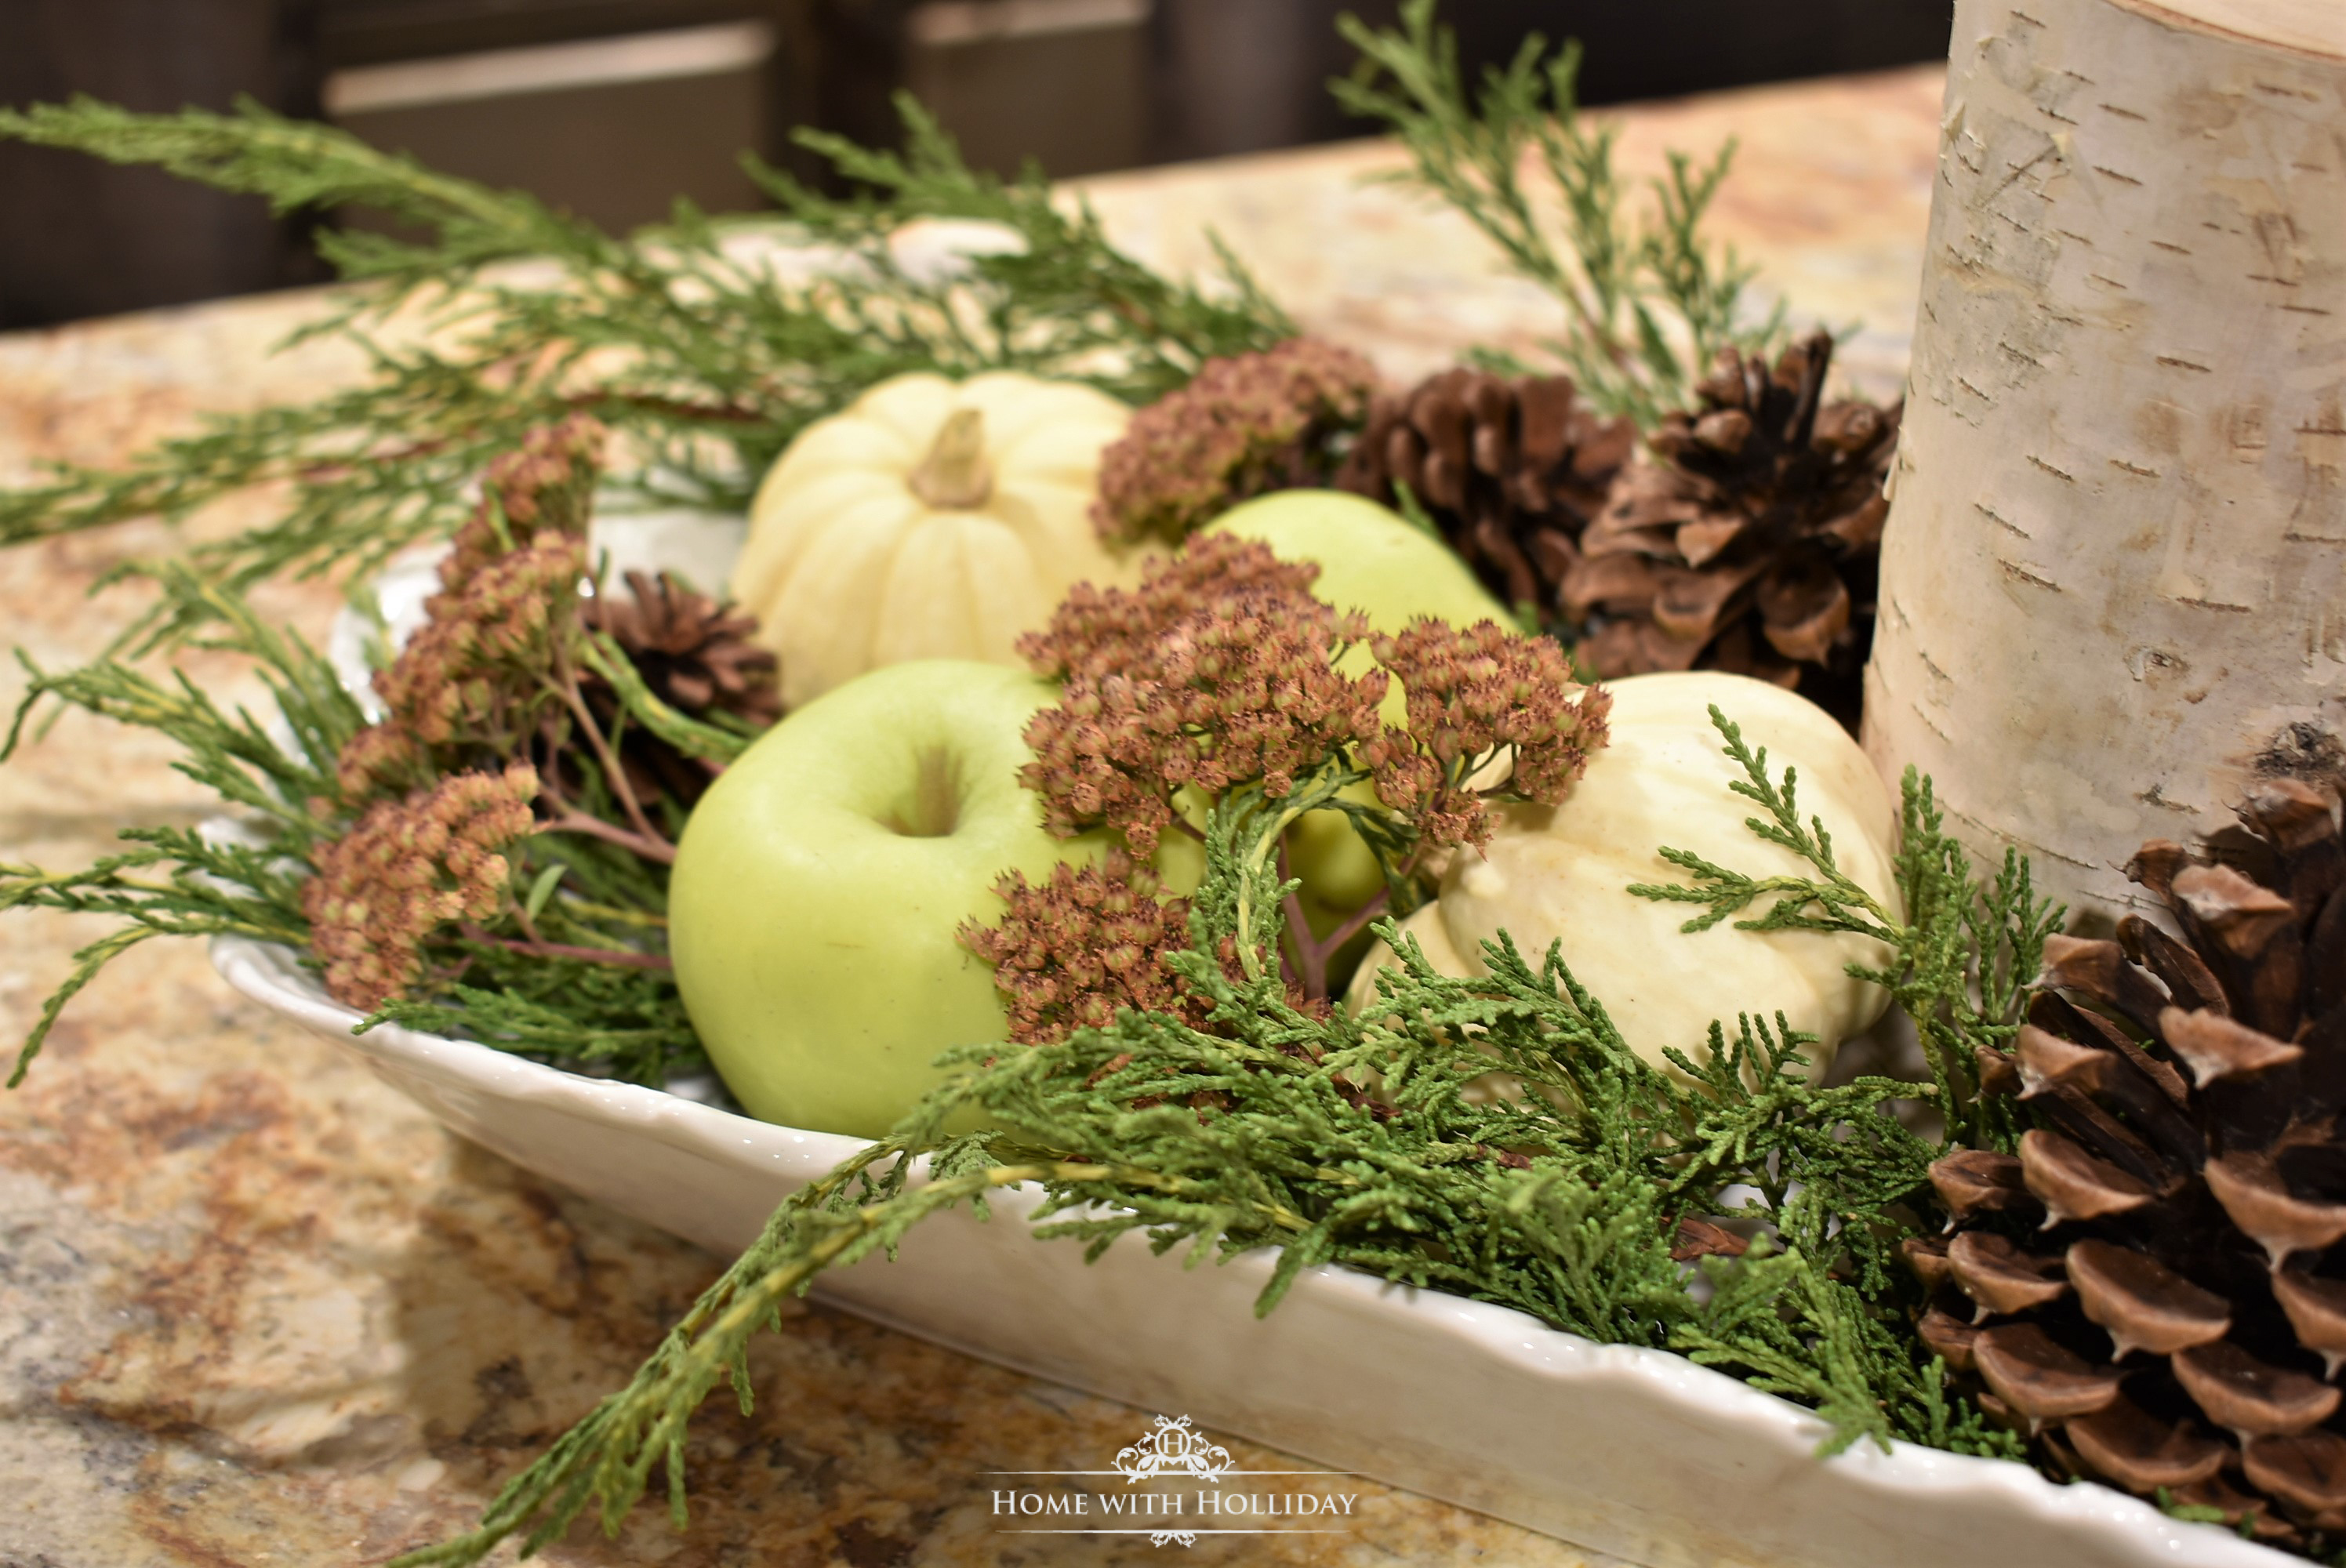 My Fall Centerpiece with Green Apples - Home with Holliday